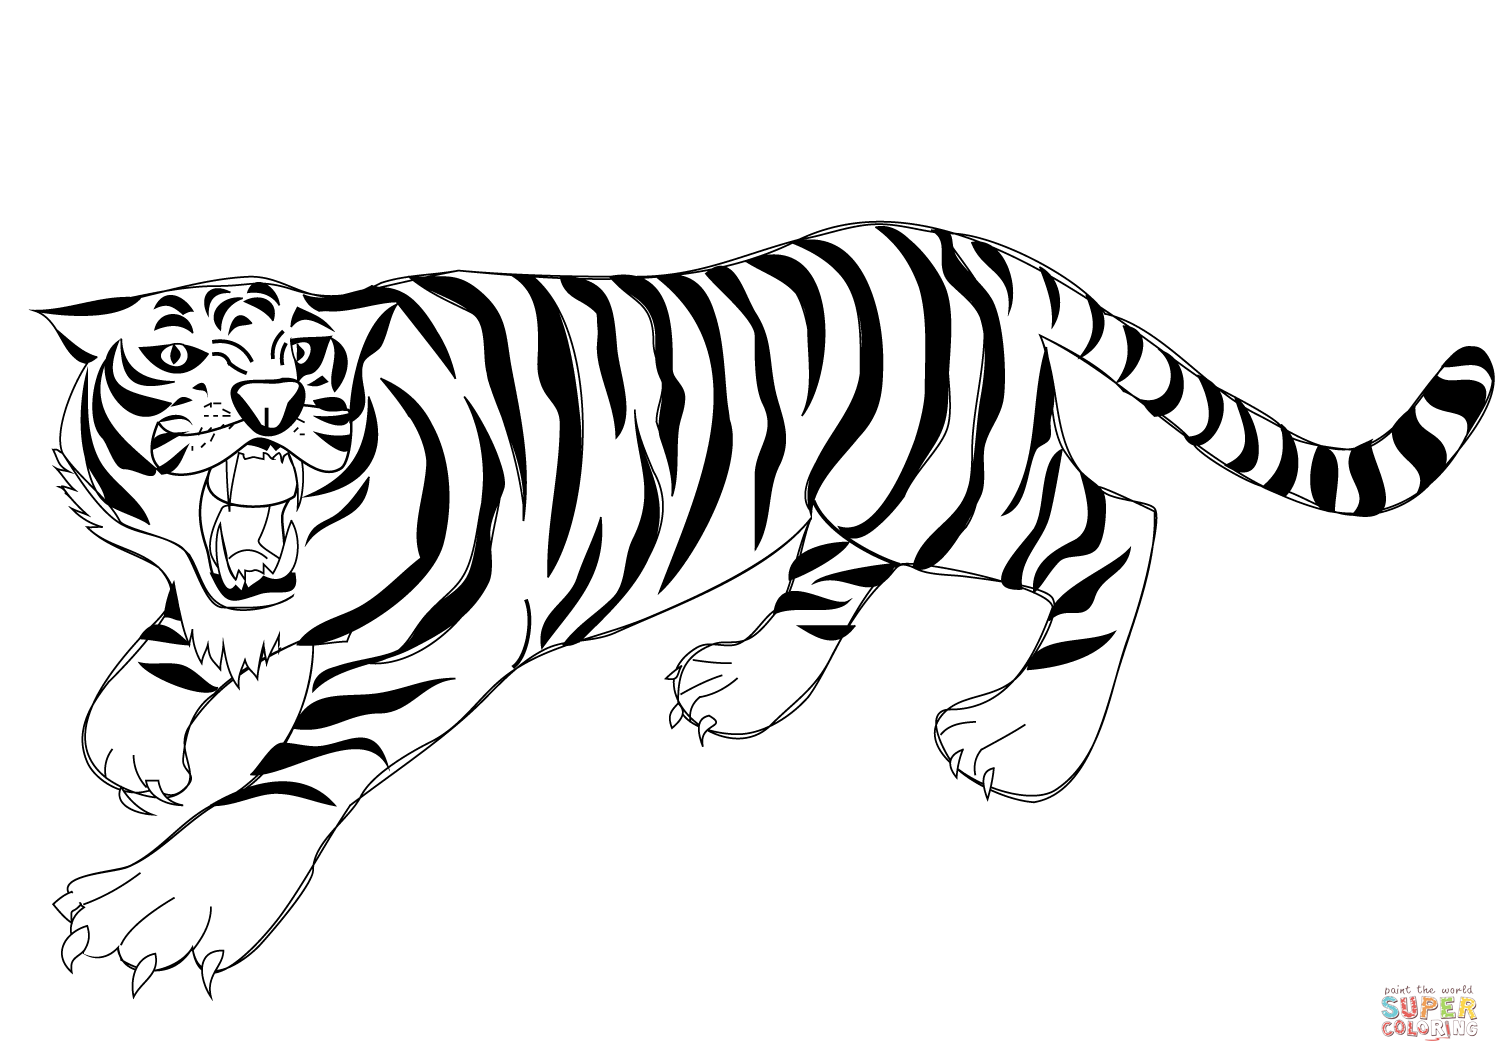 preschool tiger coloring pages tiger coloring pages free download on clipartmag tiger preschool coloring pages